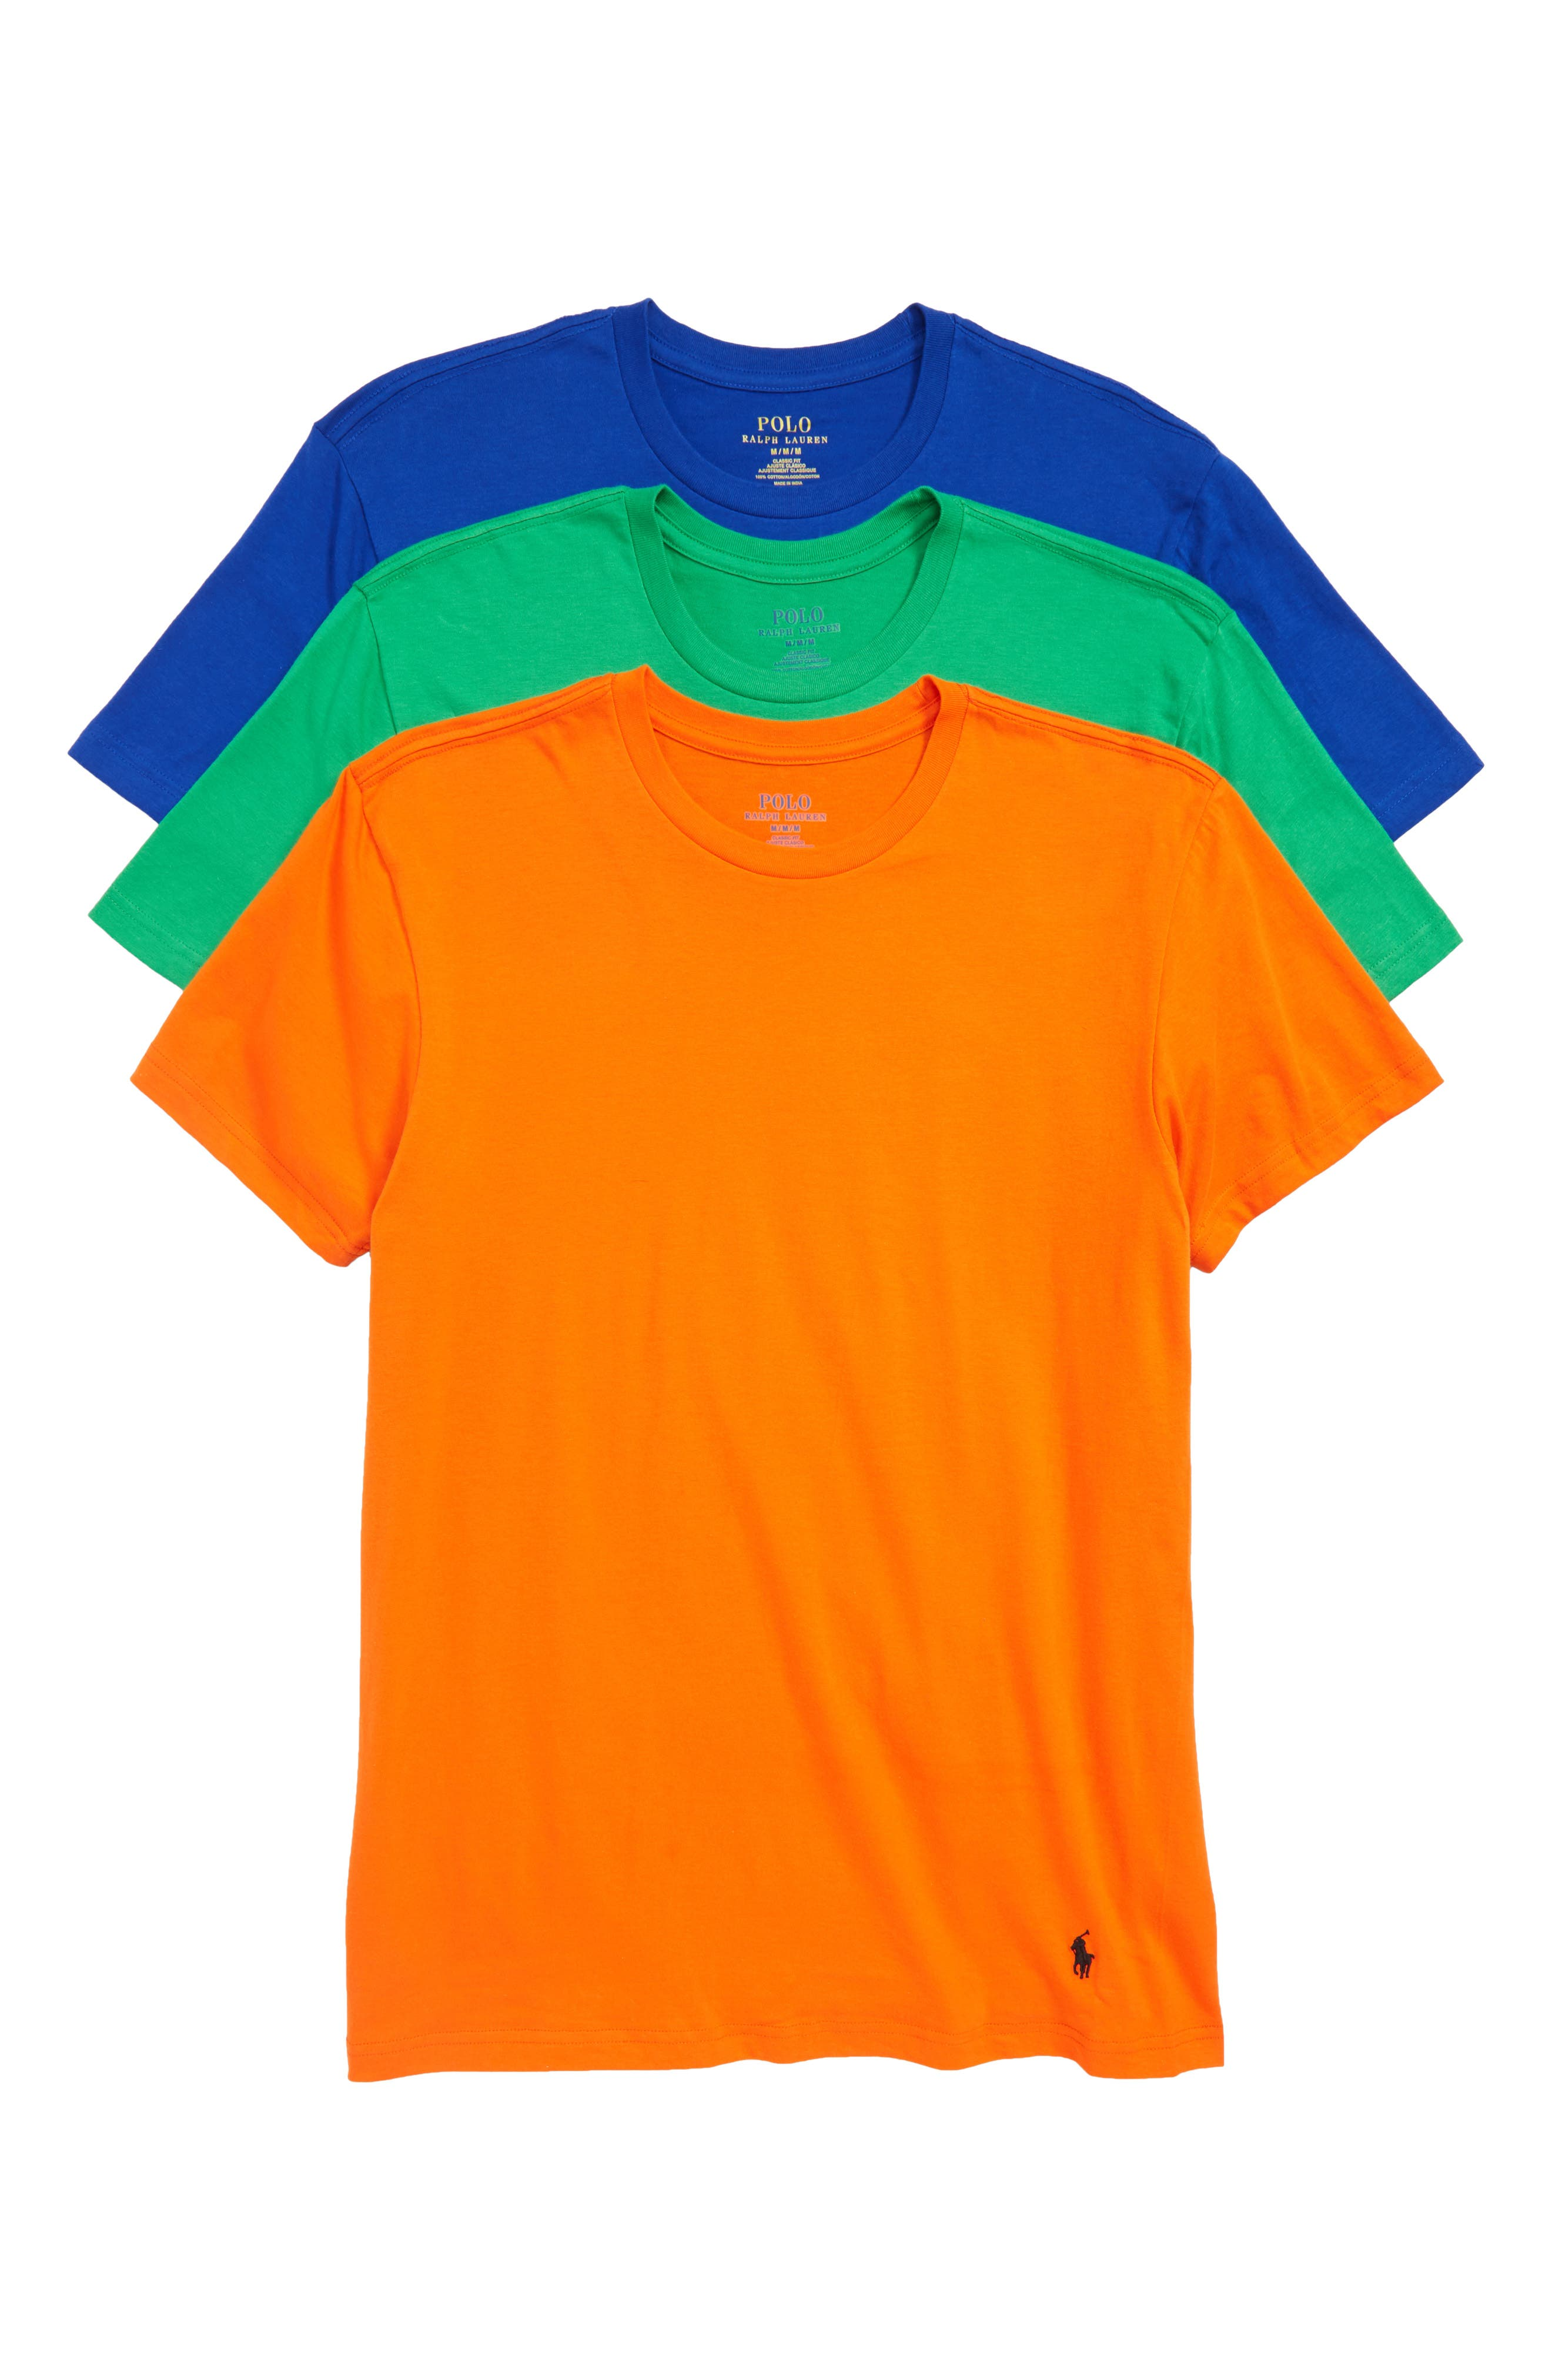 3-Pack Classic Fit T-Shirts,                         Main,                         color, ORANGE/ GREEN/ ROYAL